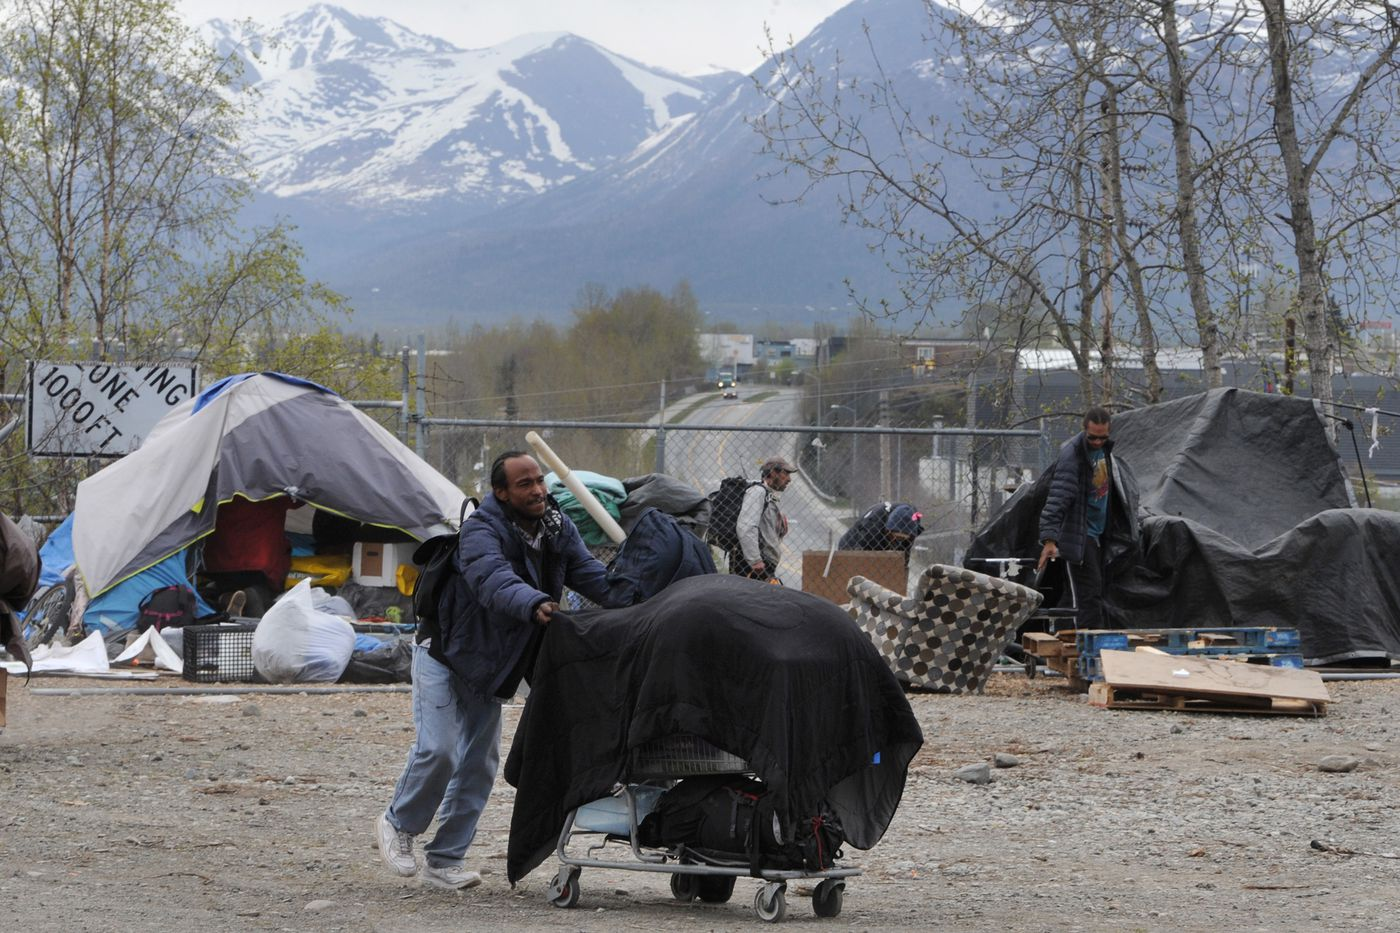 Myron Traylor pushes his belongings in a shopping cart as Anchorage Police and Parks and Recreation workers removed an illegal homeless campsite near Third Avenue and Ingra Street on Monday, May 11, 2020. (Bill Roth / ADN)